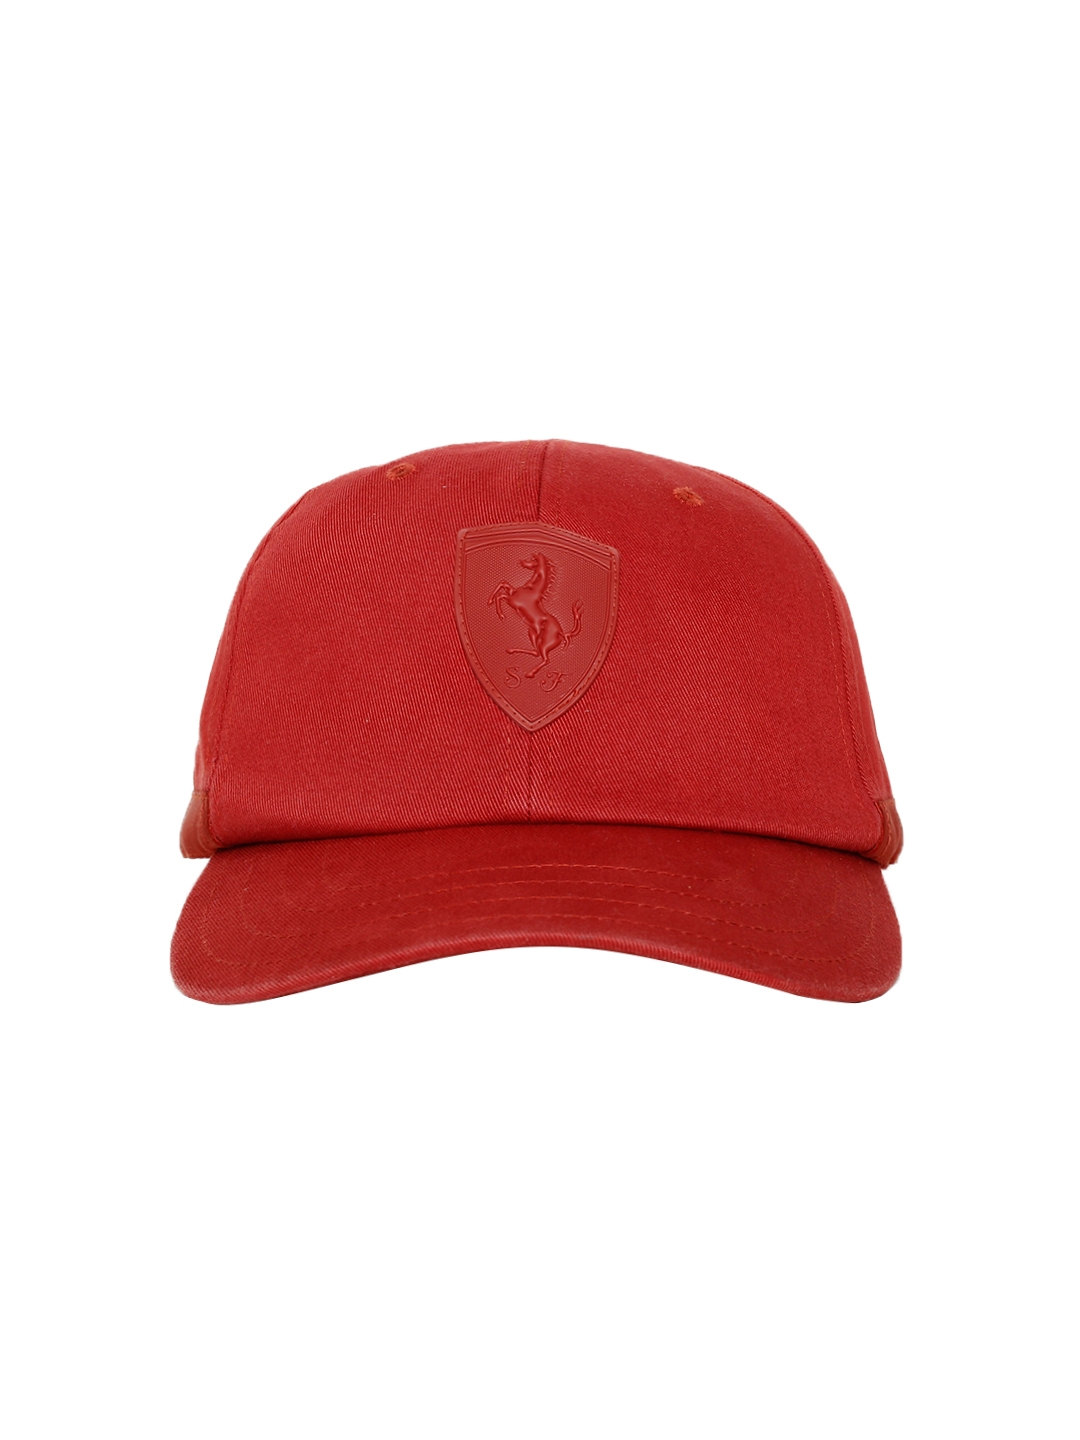 332ab331dbcfd Buy Puma Unisex Red Solid SF LS Baseball Cap - Caps for Unisex ...